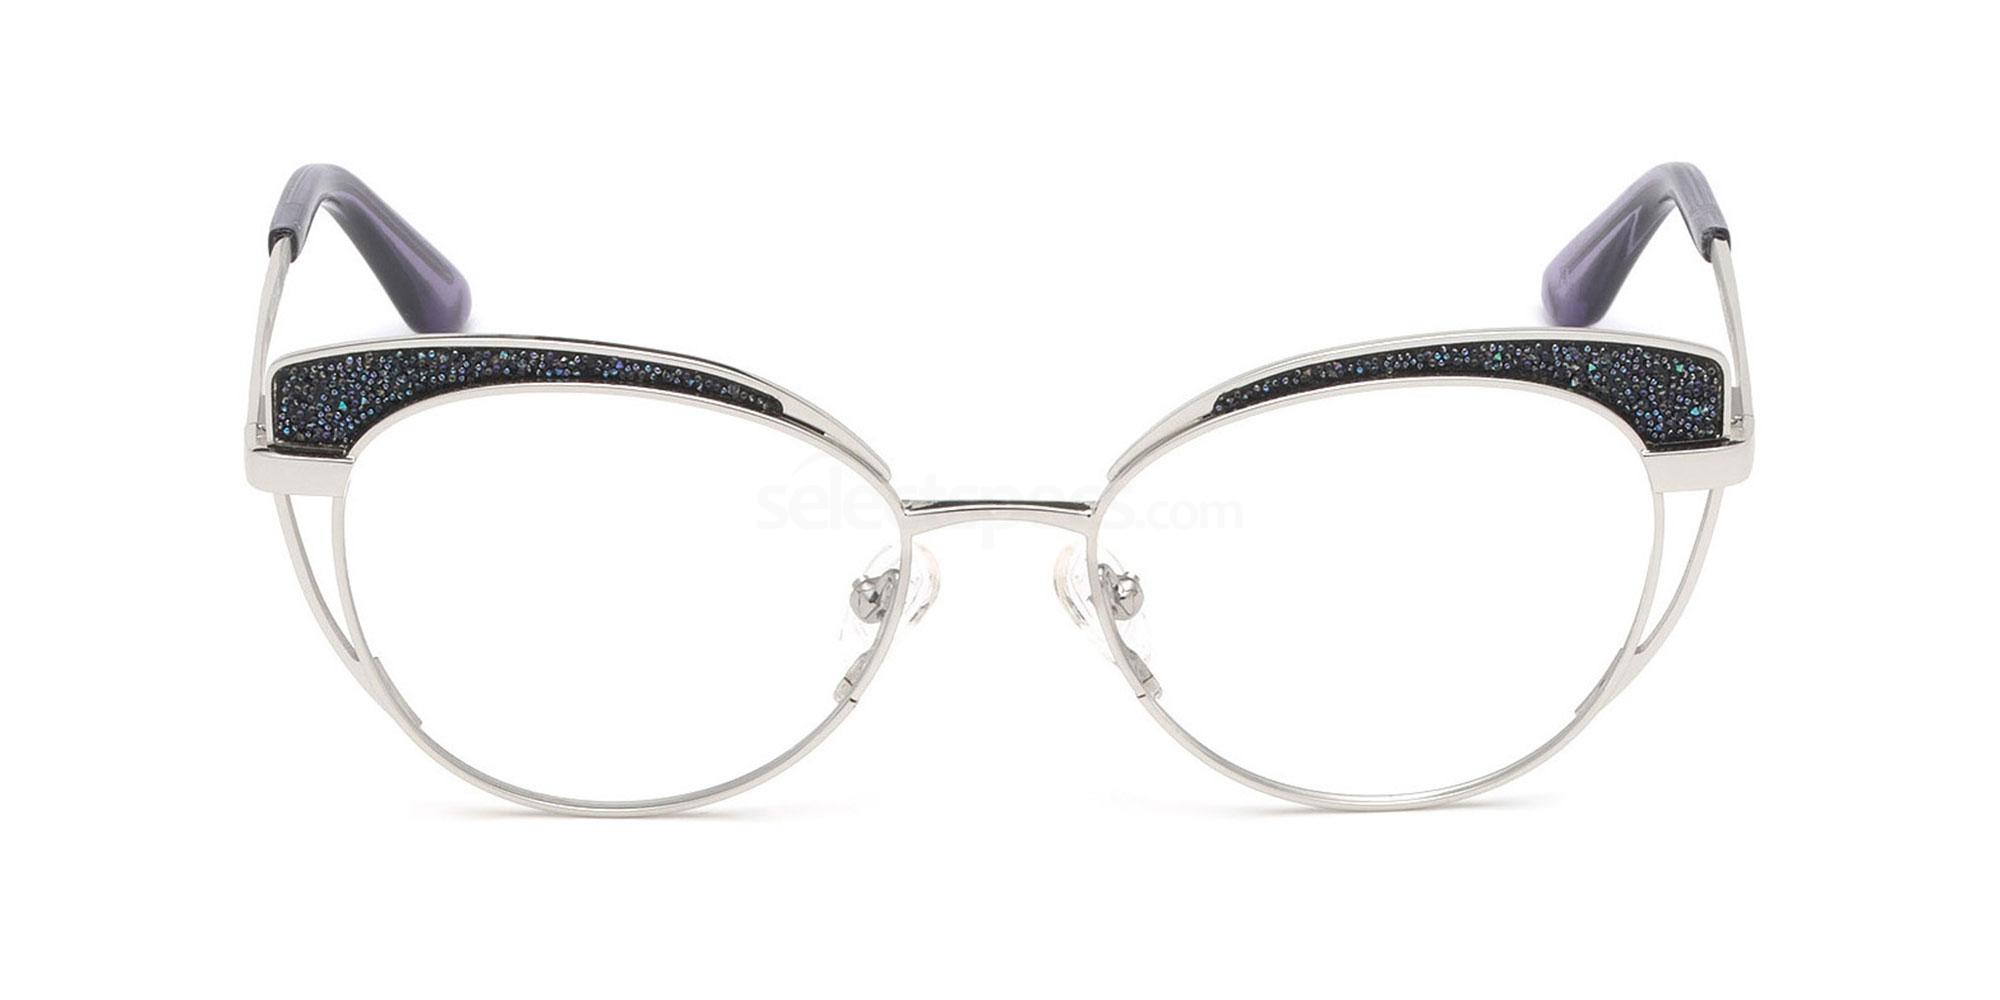 010 GM0343 Glasses, Guess by Marciano